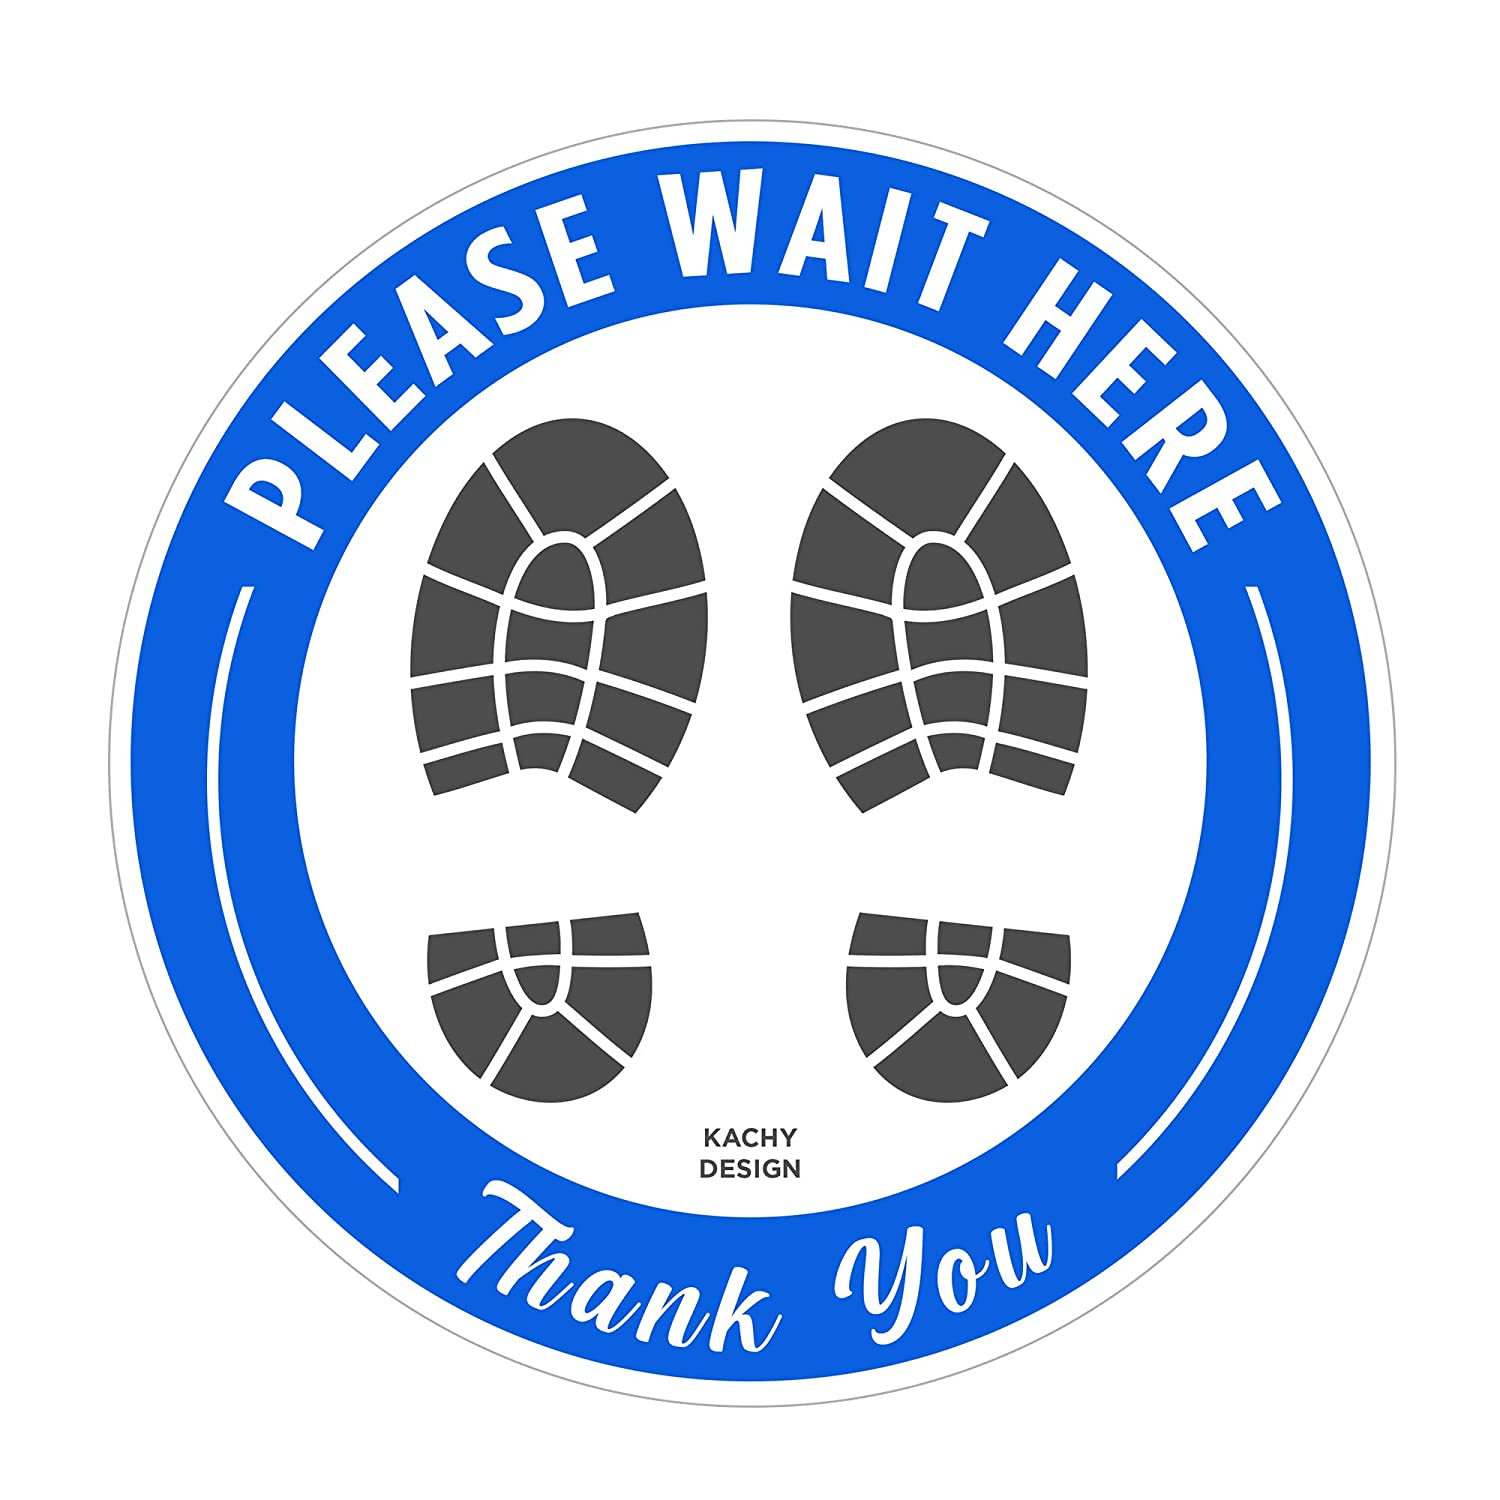 (Pack of 5) Wait Here - Social Distancing Decal for Tiles or Floor | 8